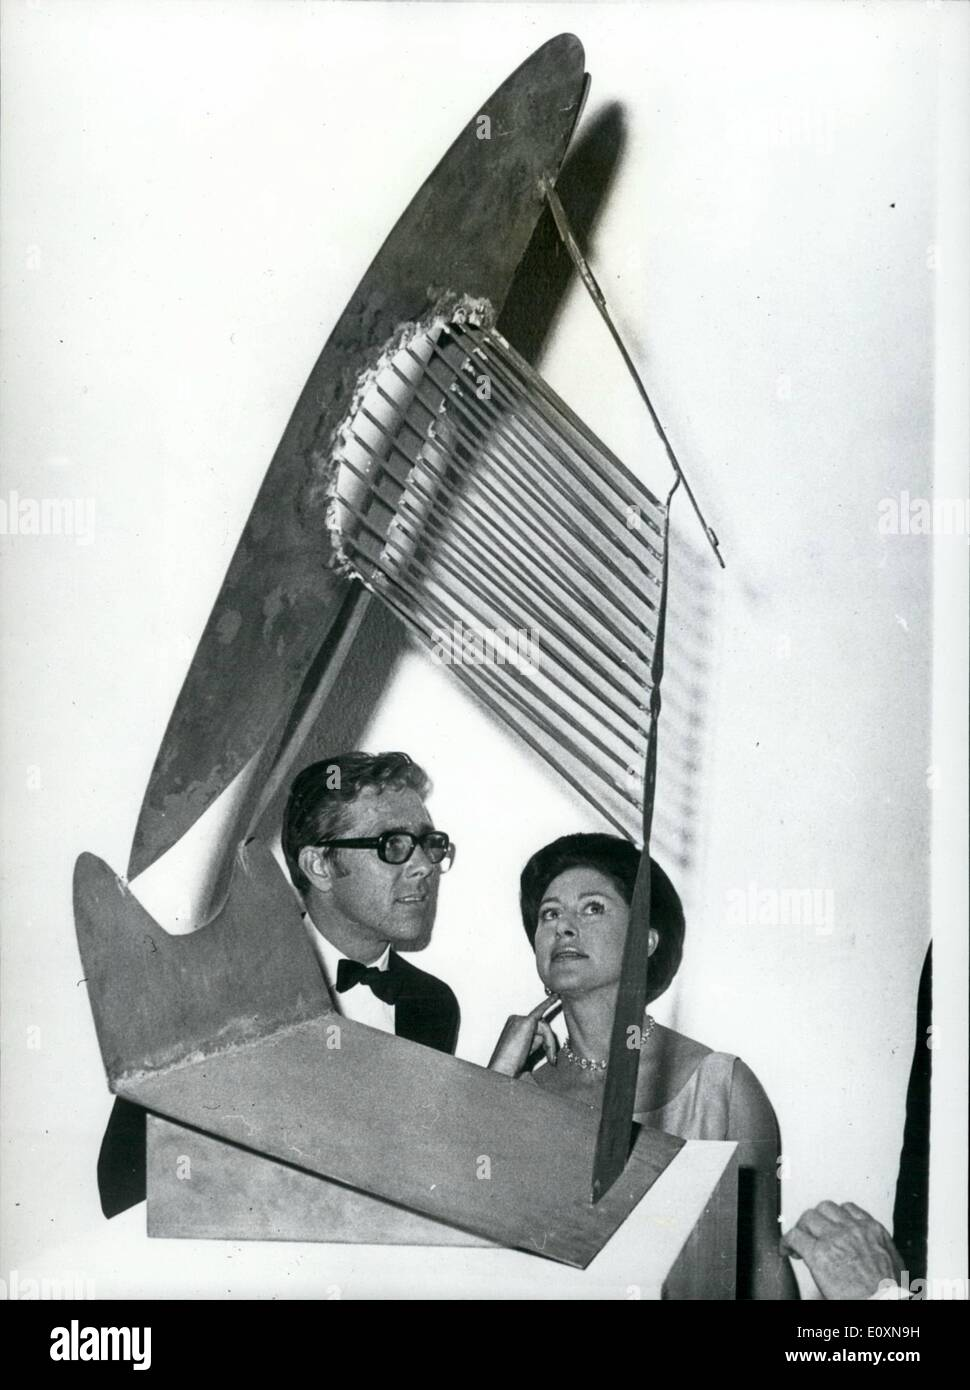 Jun. 06, 1967 - Princess Margaret and Picasso's Maquette: Following last night's Thursday Institute of Contemporary Stock Photo